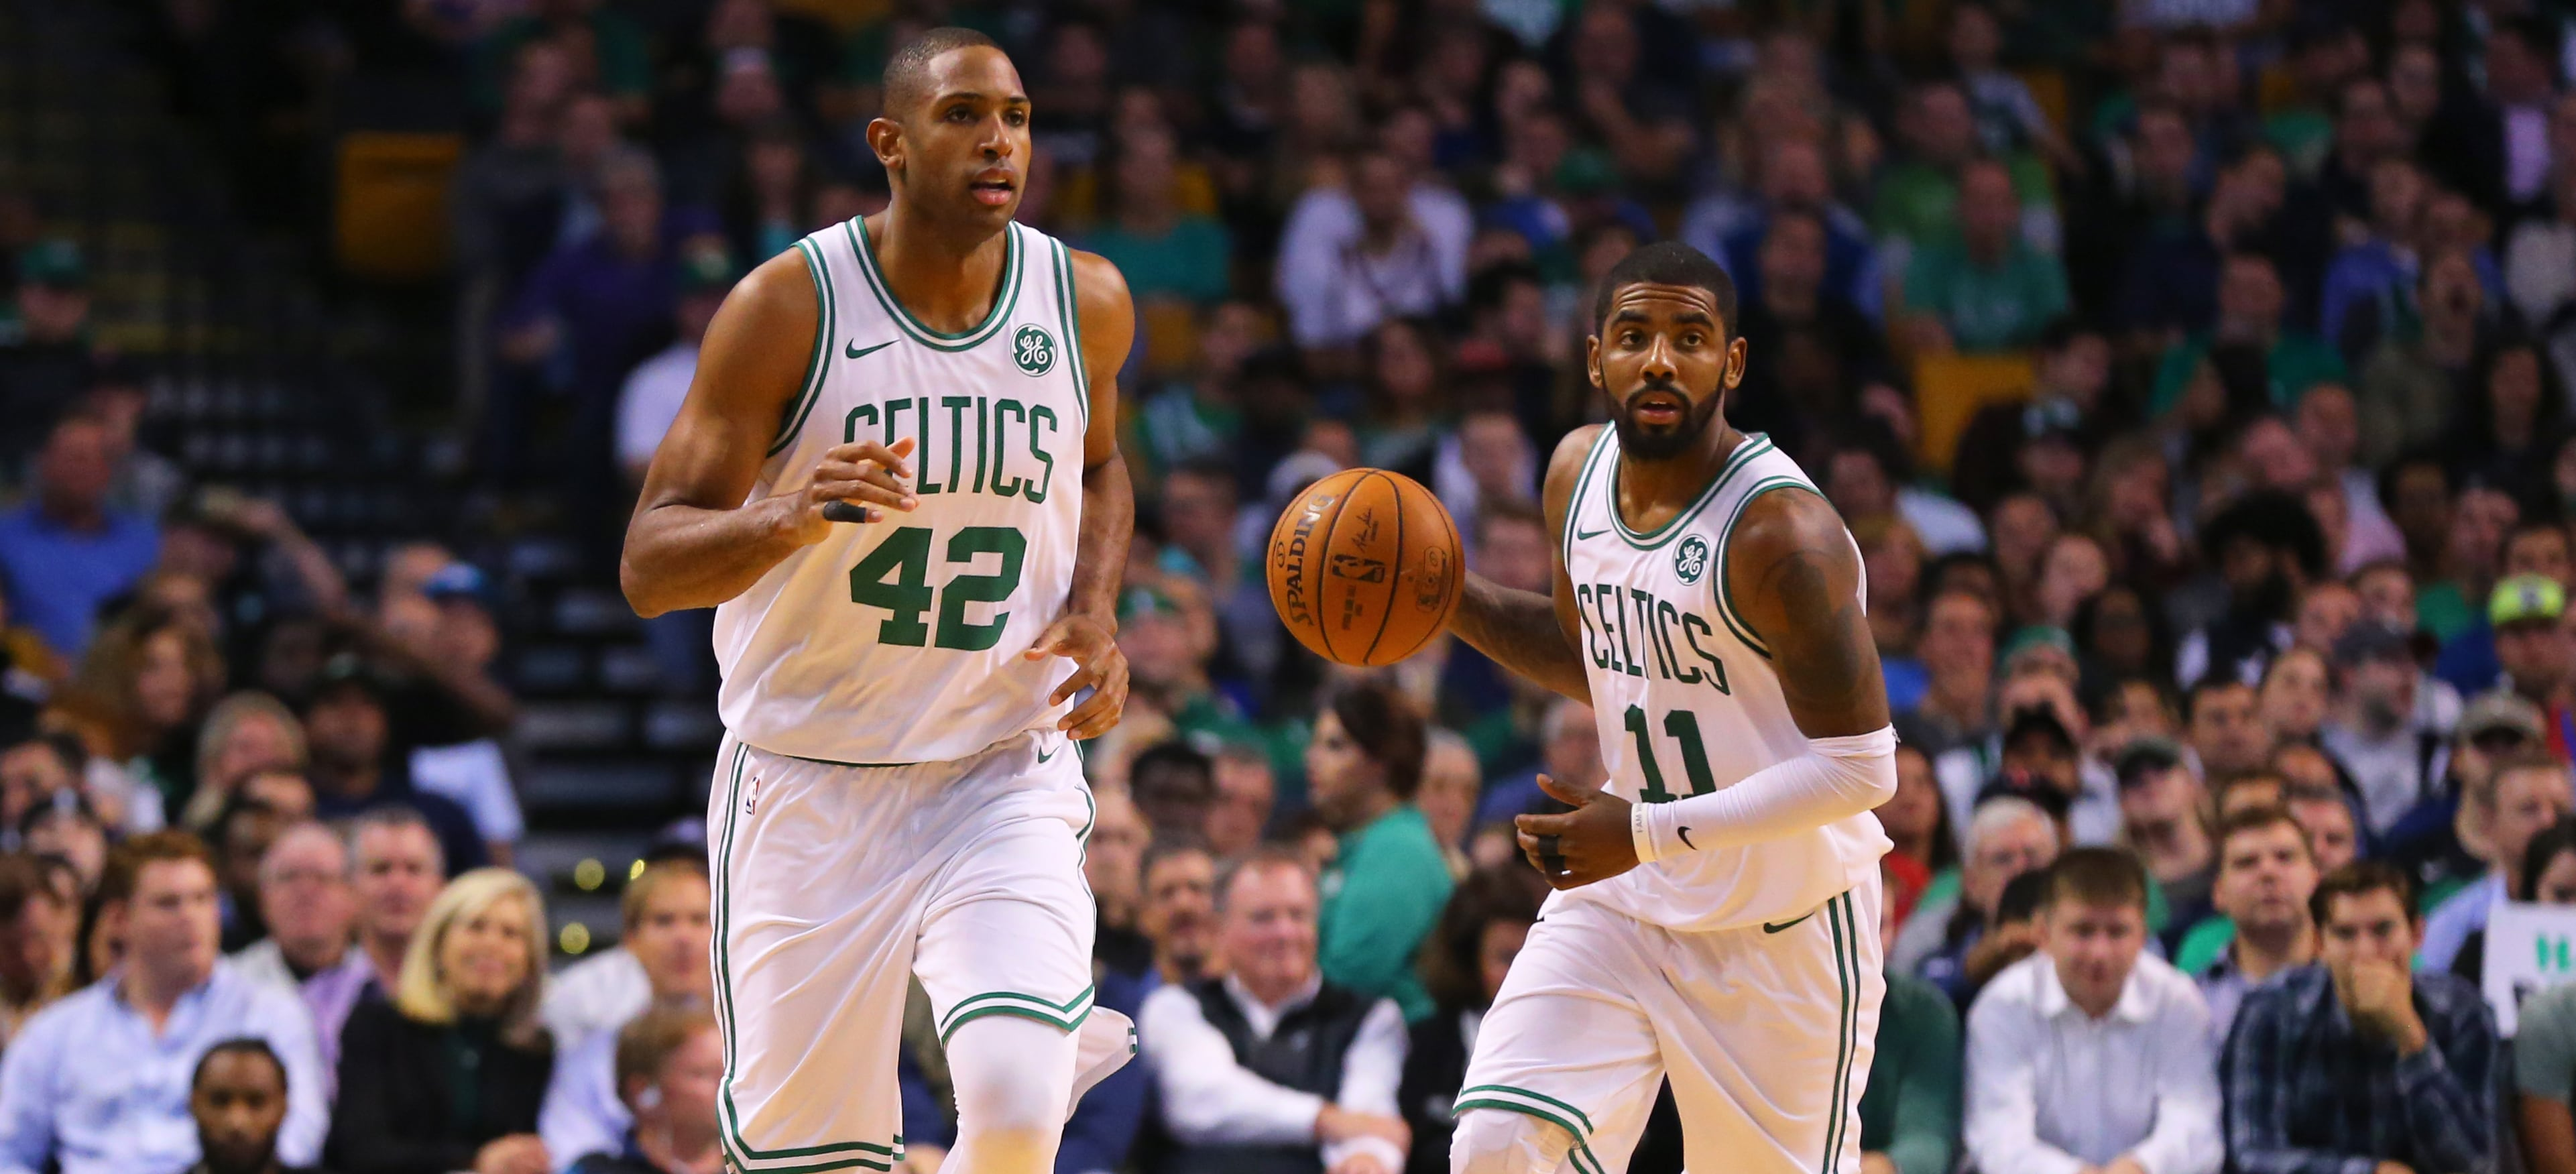 Al Horford and Kyrie Irving on the court